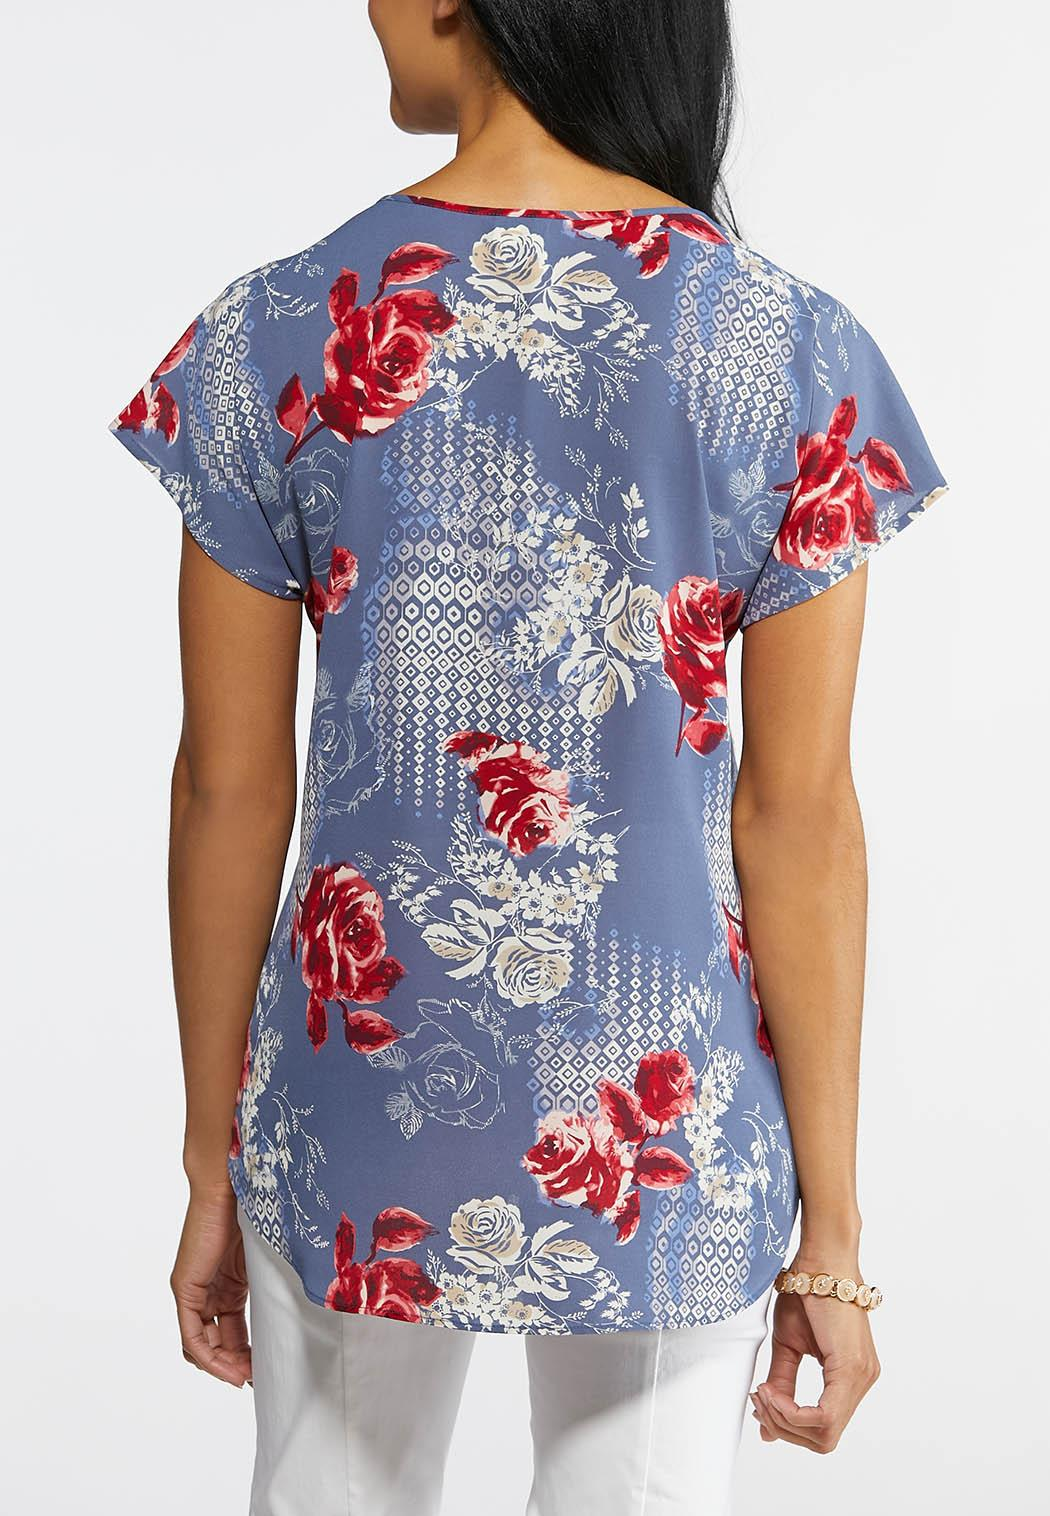 Beaded Keyhole Floral Top (Item #43861923)